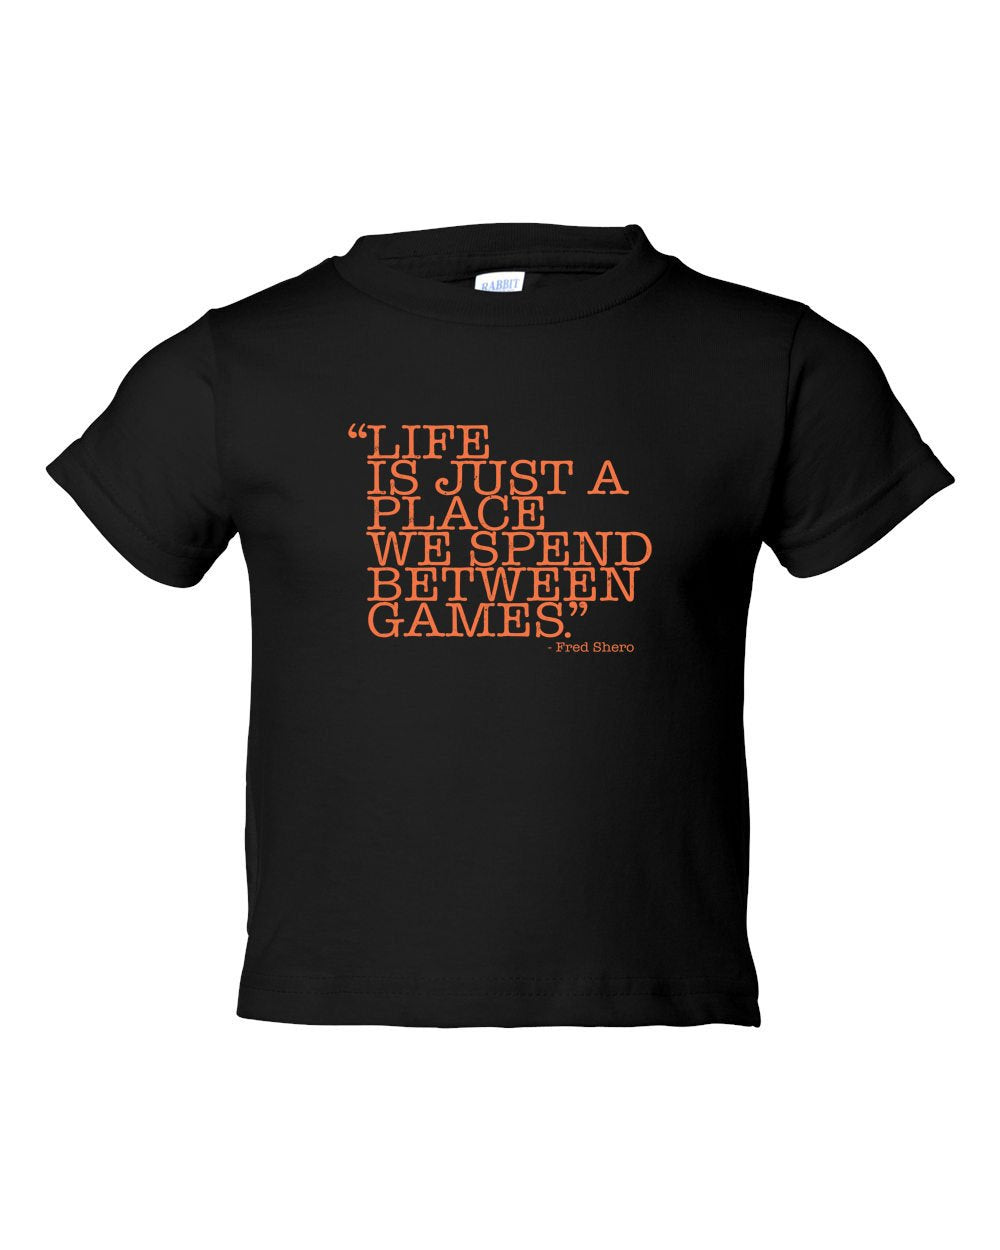 Between Games TODDLER T-Shirt